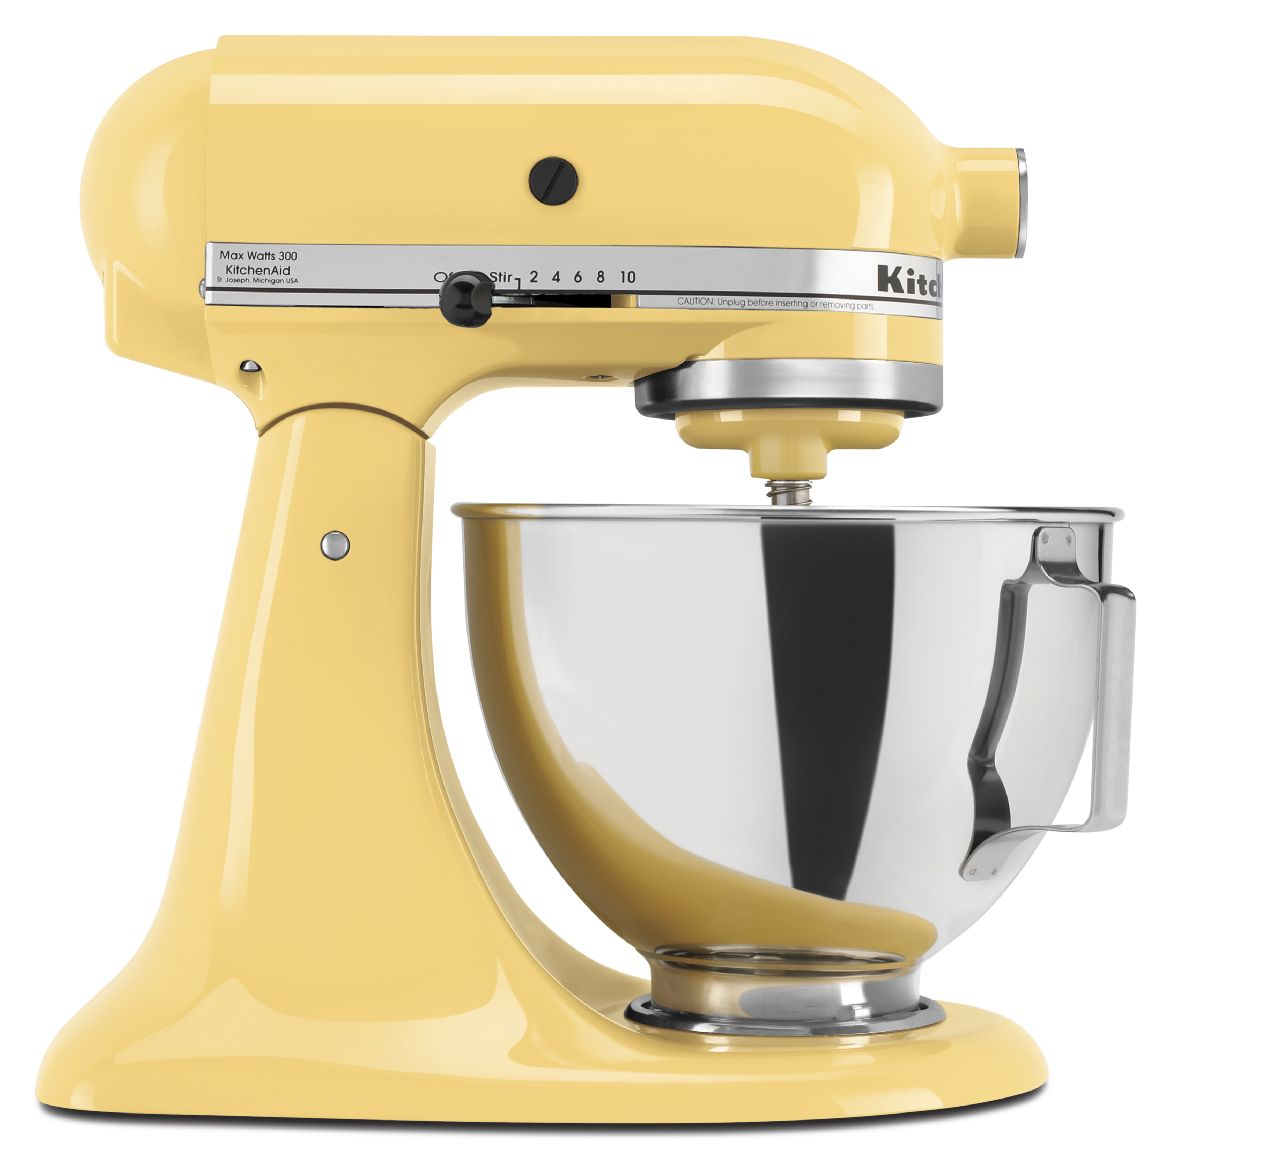 KitchenAid-4-5-quart-Tilt-Head-Stand-Mixer-with-Flex-Edge-Beater-KSM85PSQ thumbnail 19